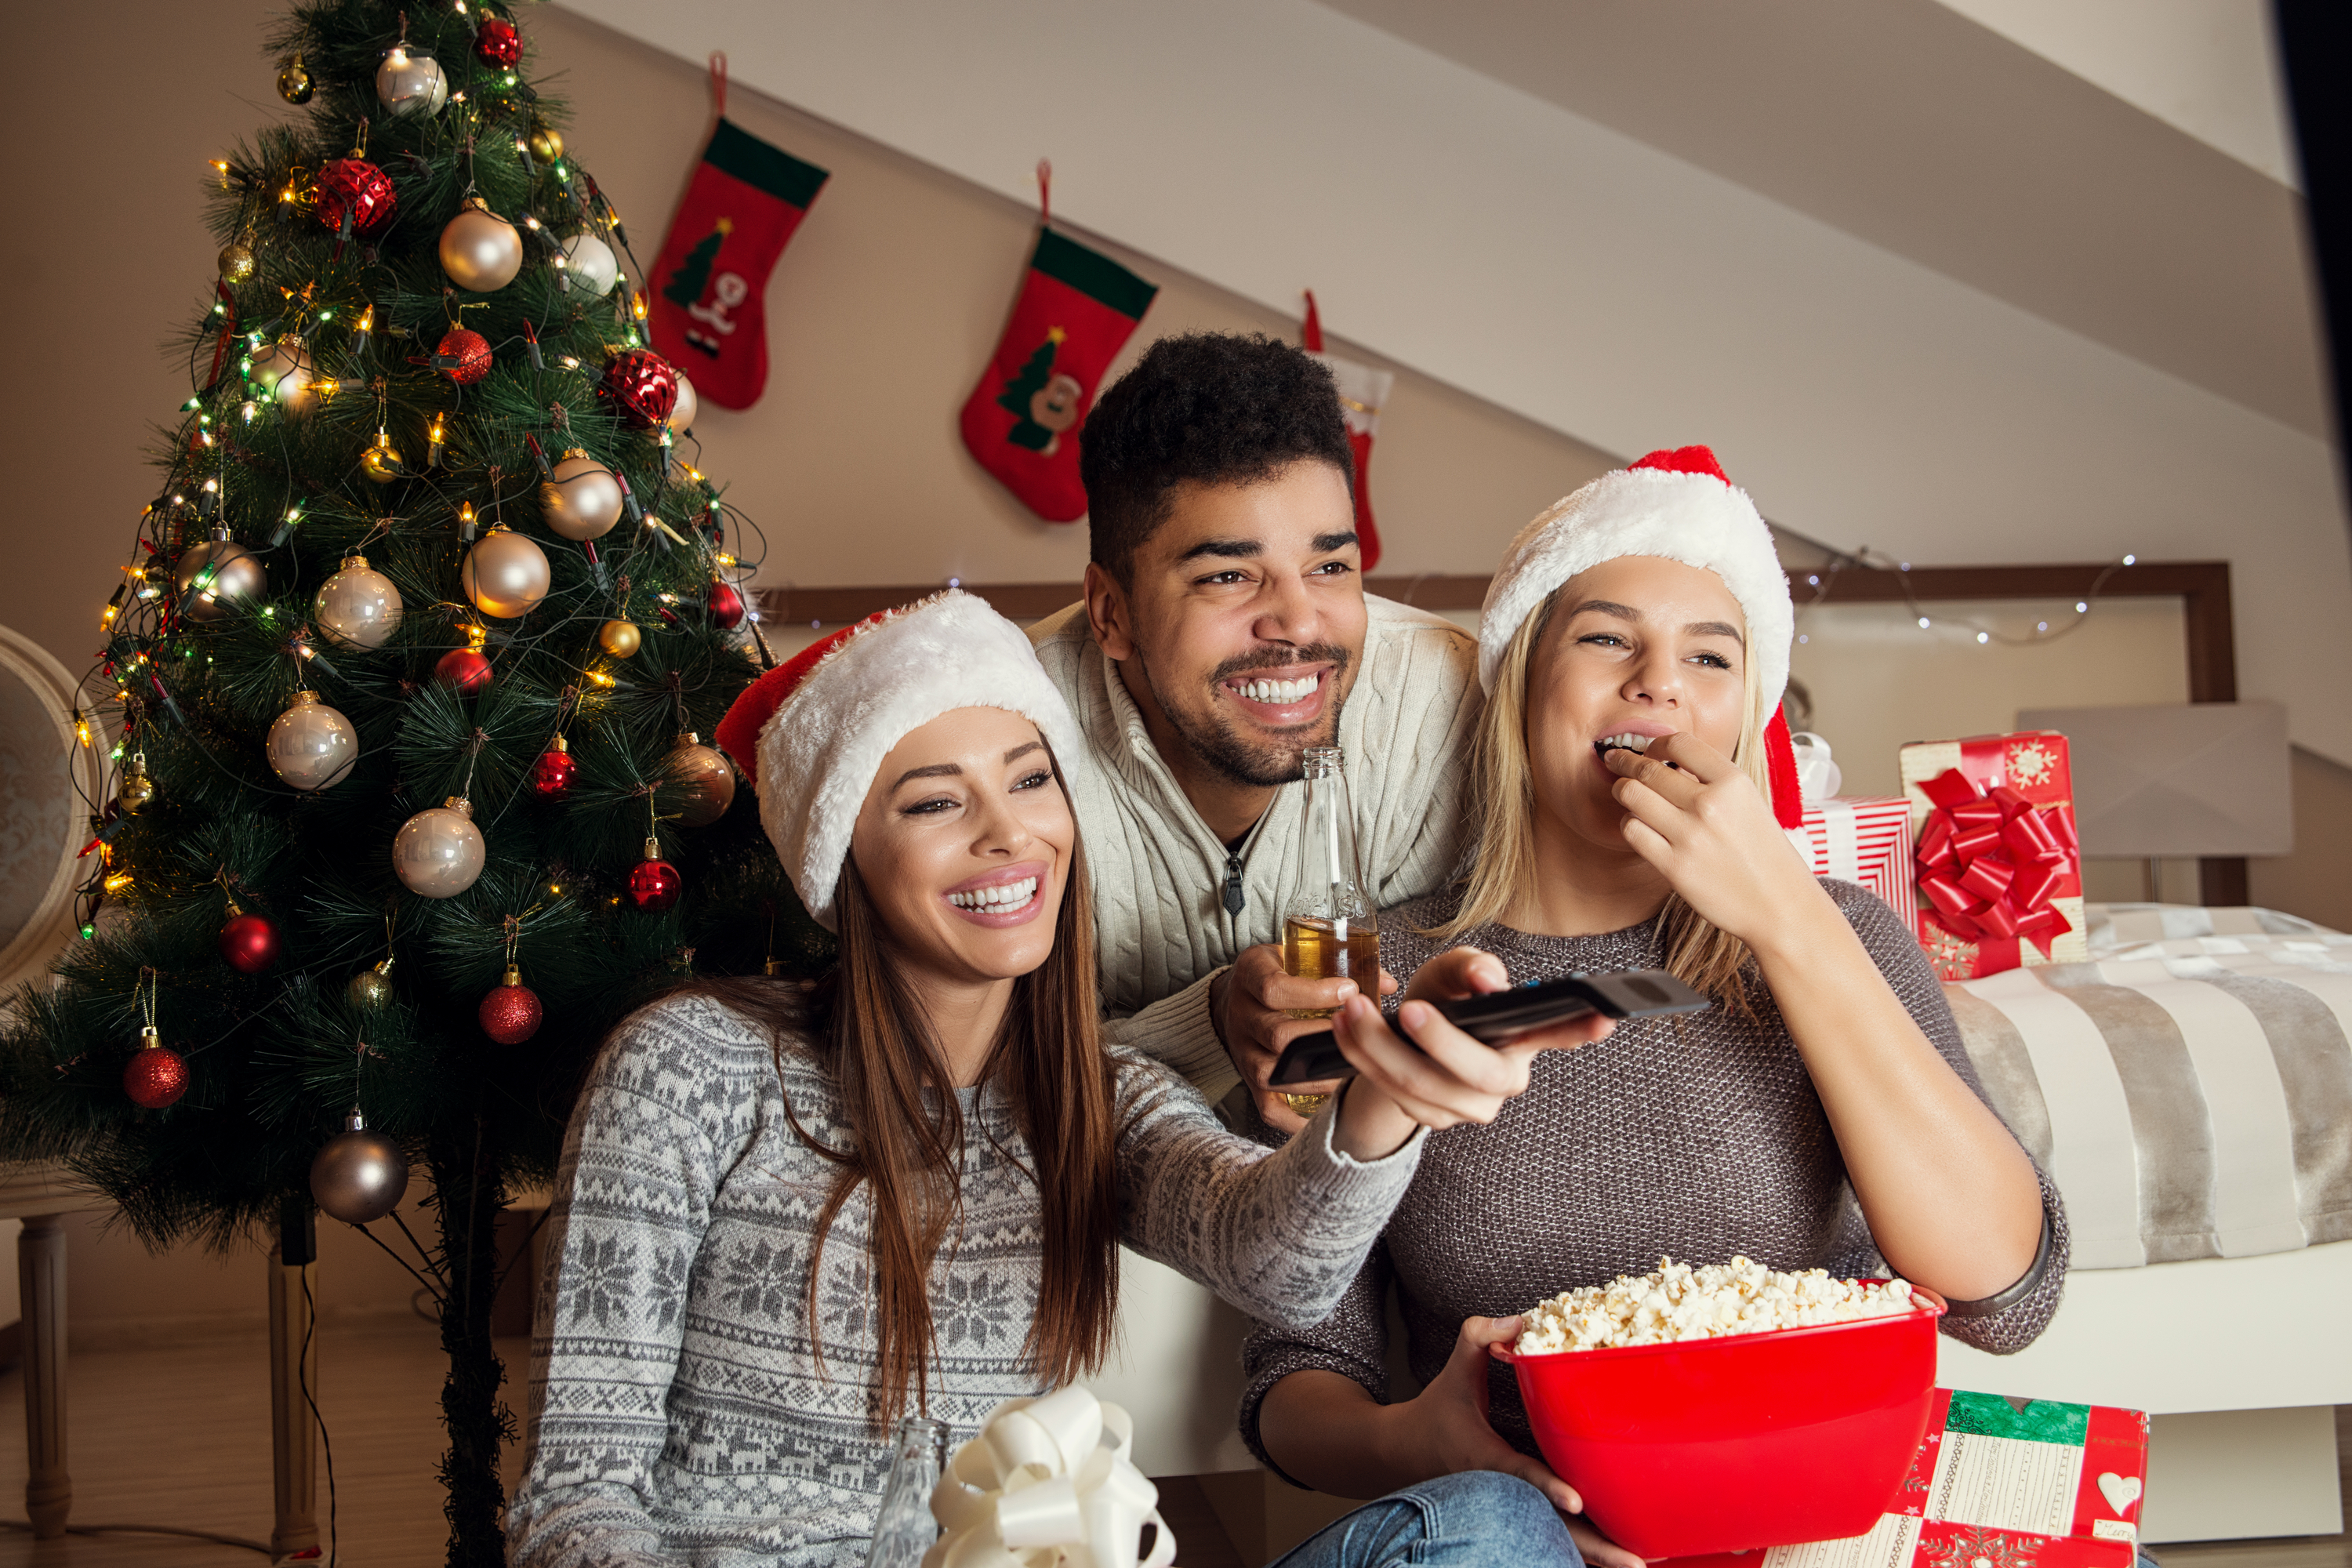 There's nothing better than spending time with family during the holidays. These Hallmark Christmas movies are the perfect family activity.